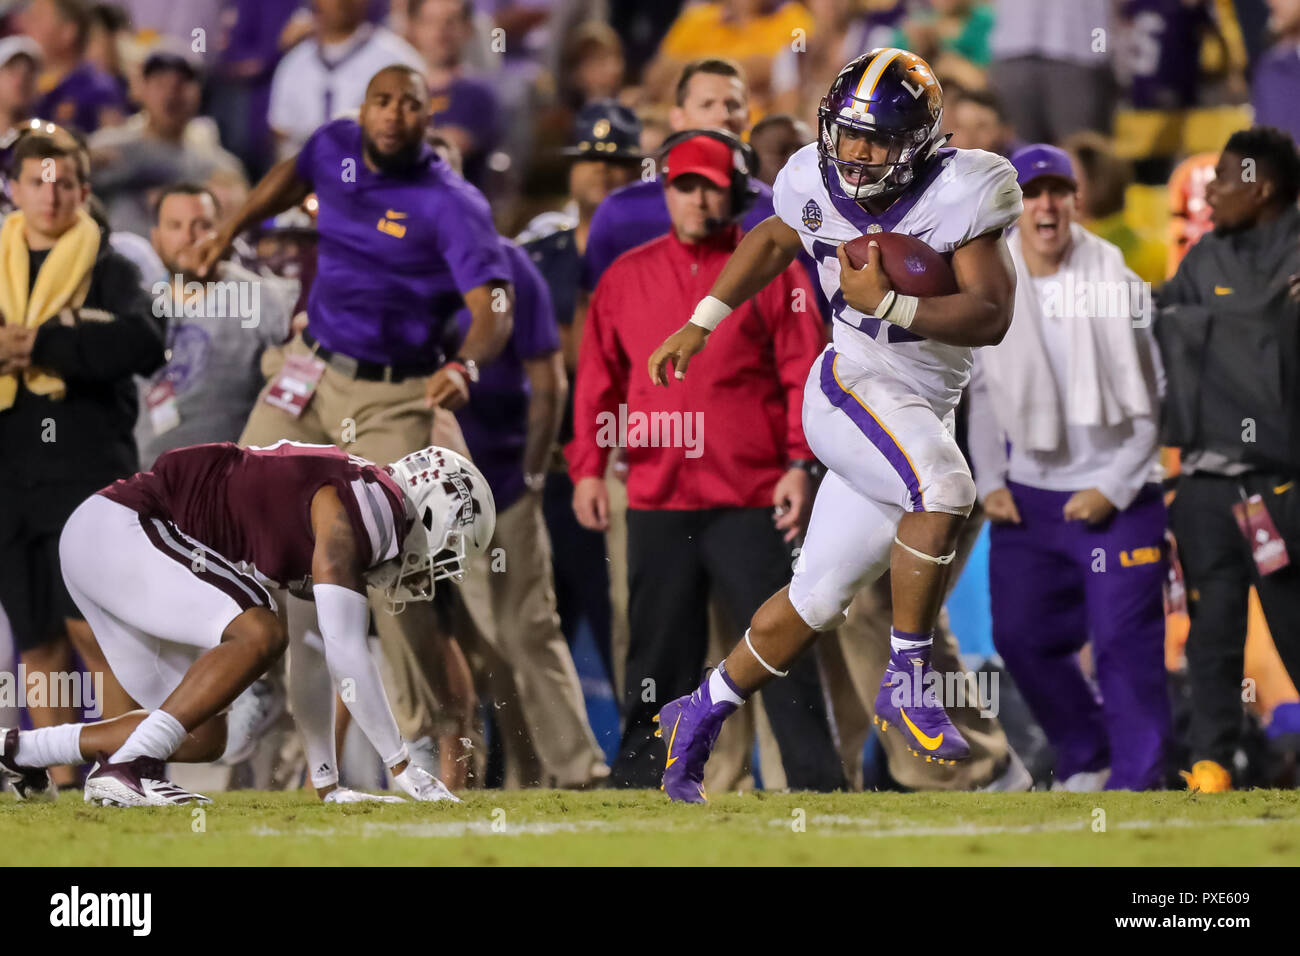 LSU Tigers running back Clyde Edwards-Helaire (22) runs against Mississippi  State Bulldogs during the game between the LSU Tigers and Mississippi State  ... 90a7978e4